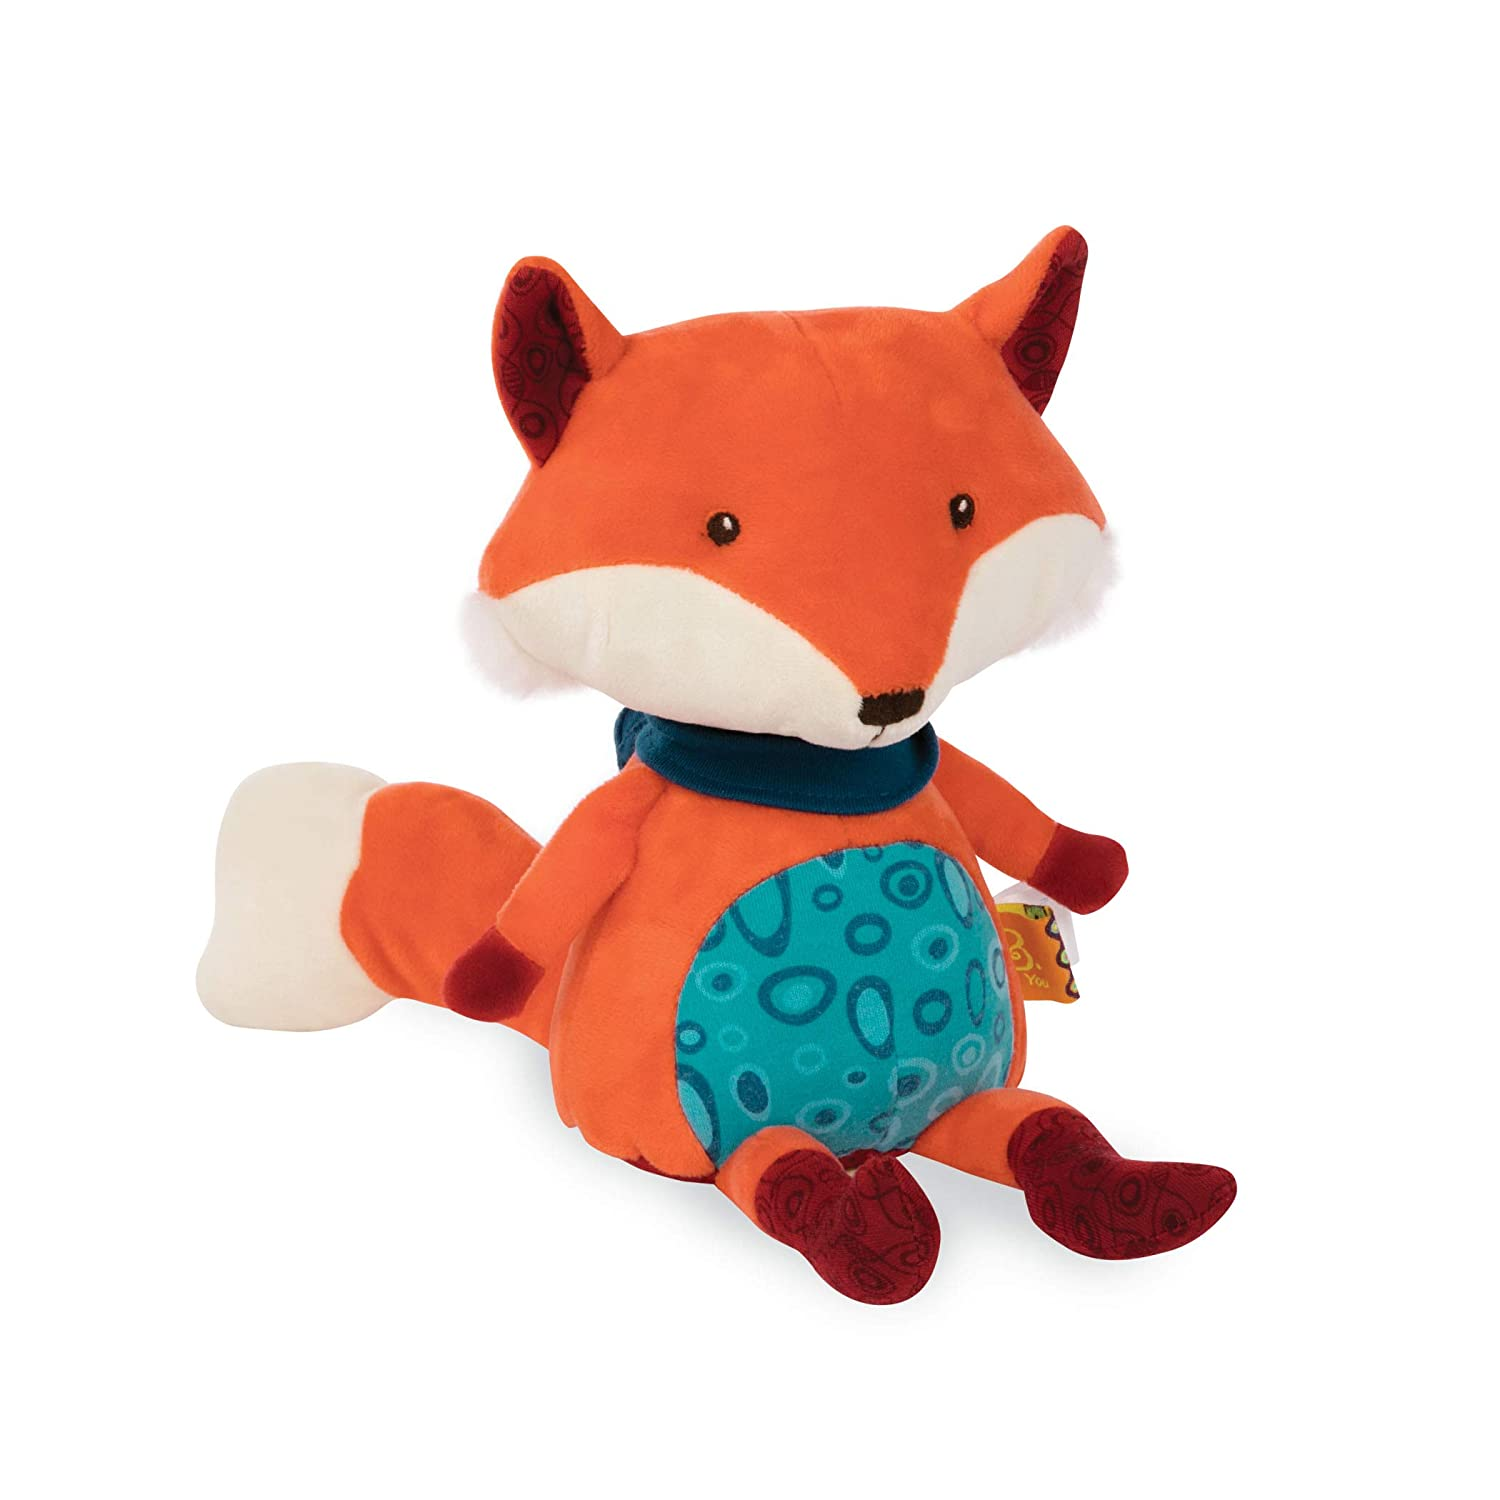 BTOYS Renard BAVARD B Toys Doudou Musical, BX1513, Orange Battat BX1513Z